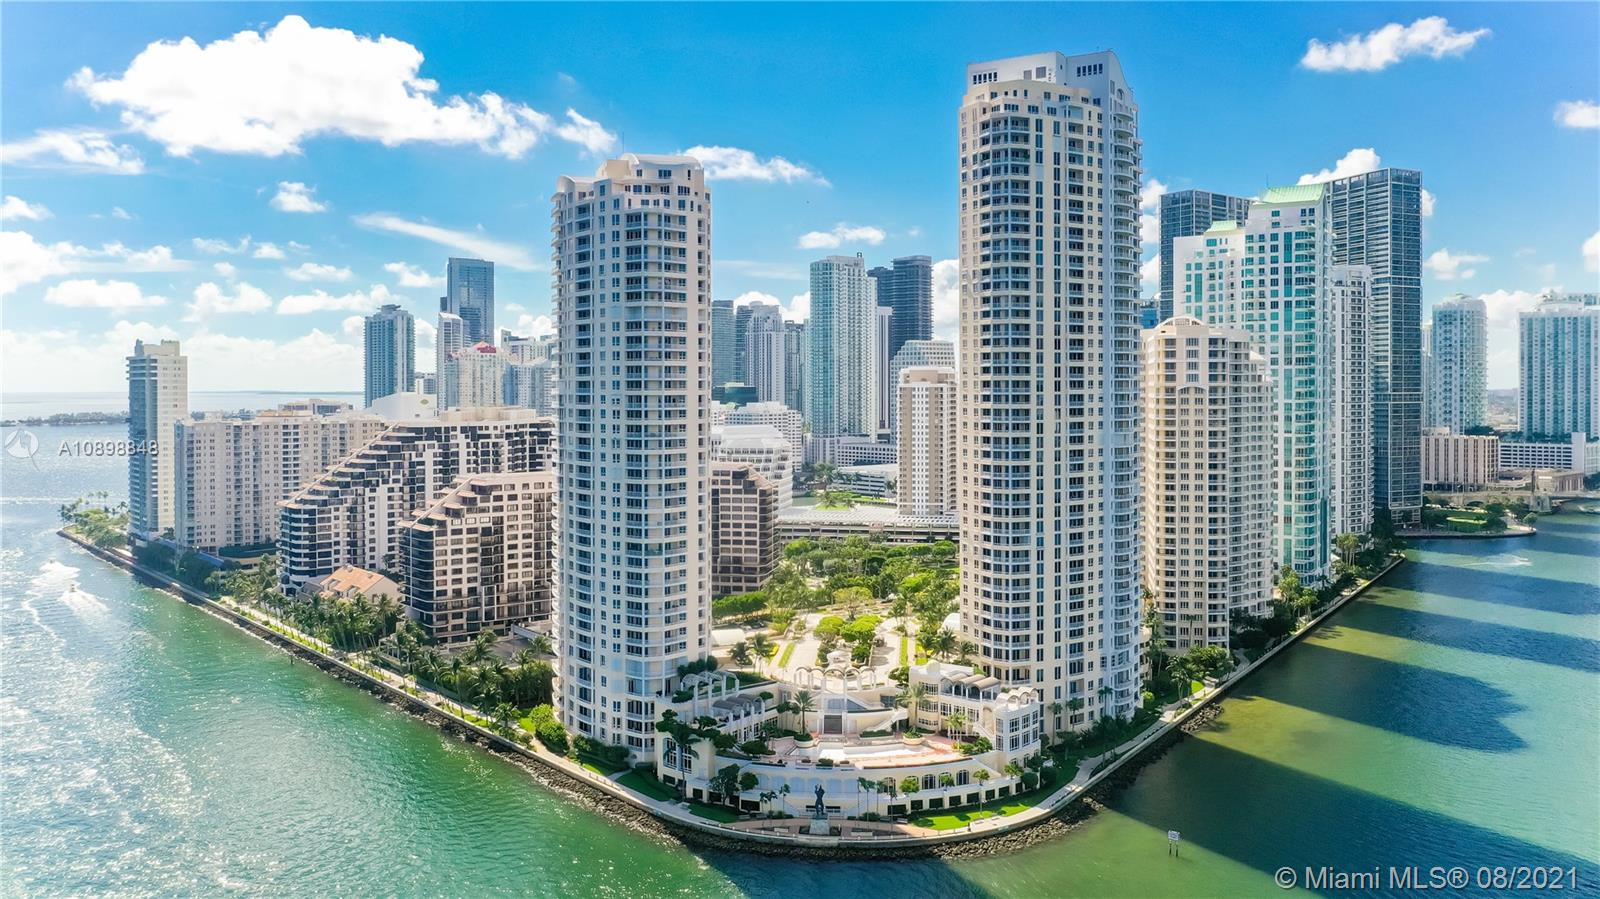 Breathtaking panoramic views from this recently remodeled unit! The best views Miami has to offer. Enjoy views of Key Biscayne, Fisher Island, Miami Beach, Port of Miami and the incredible Miami downtown skyline from the comfort of your home in the sky. Island living at its finest at the luxurious Two Tequesta Point. Tennis court, indoor basketball court, 2 racquetball courts, 2 story top of the line fitness center, renovated pool over looking Biscayne bay, conference rooms, children play room, complimentary valet, 1.3 mil walk/jogging path around the island.